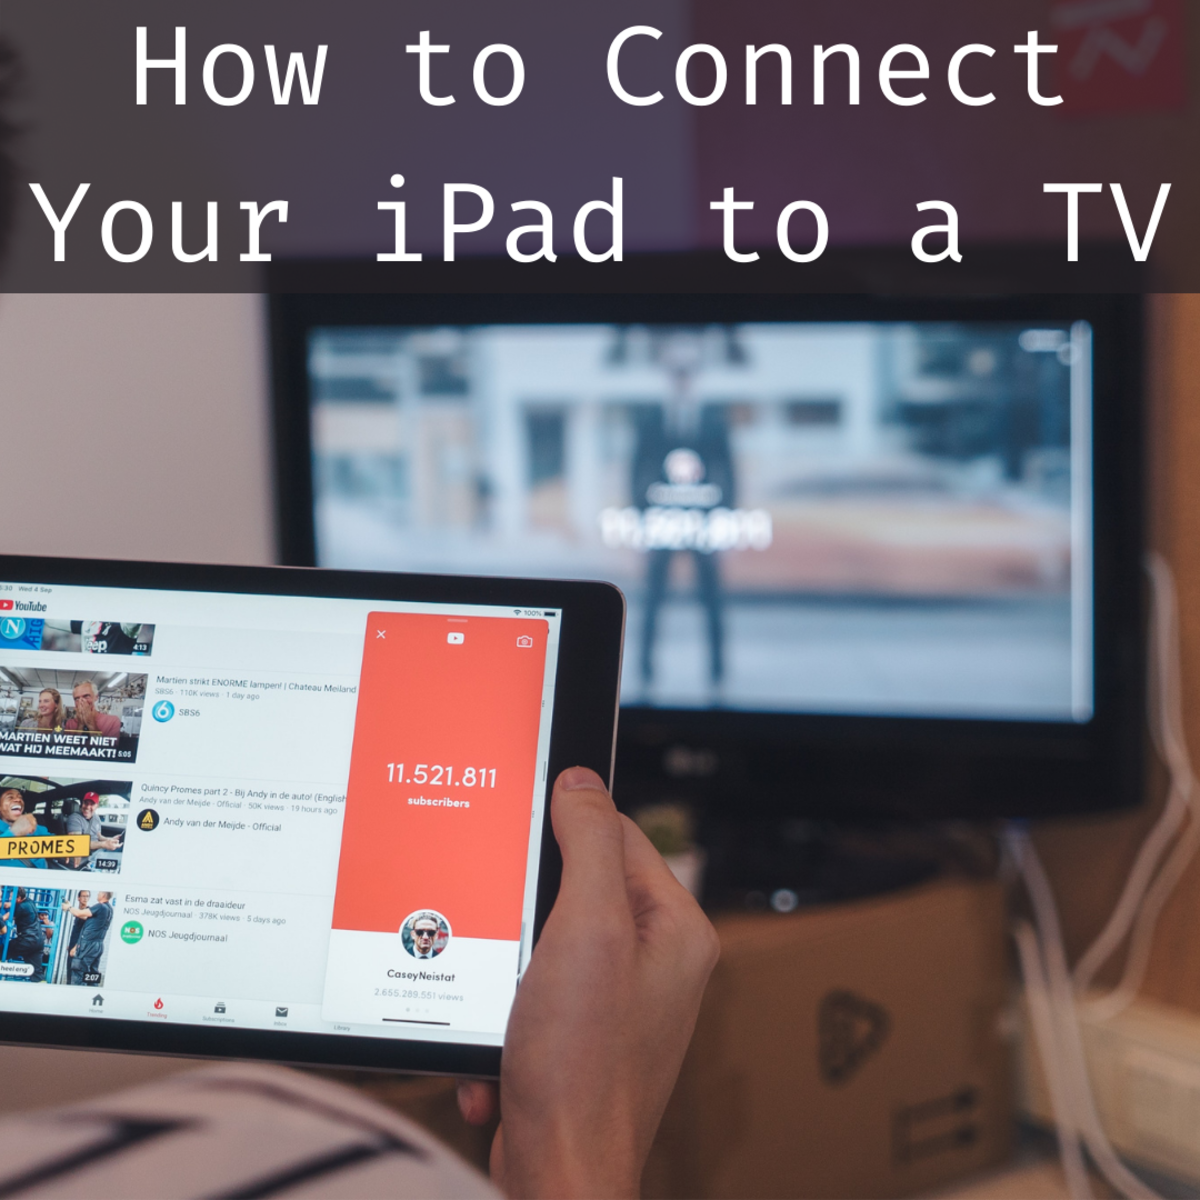 Read on to learn the best methods for connecting your iPad to your TV.